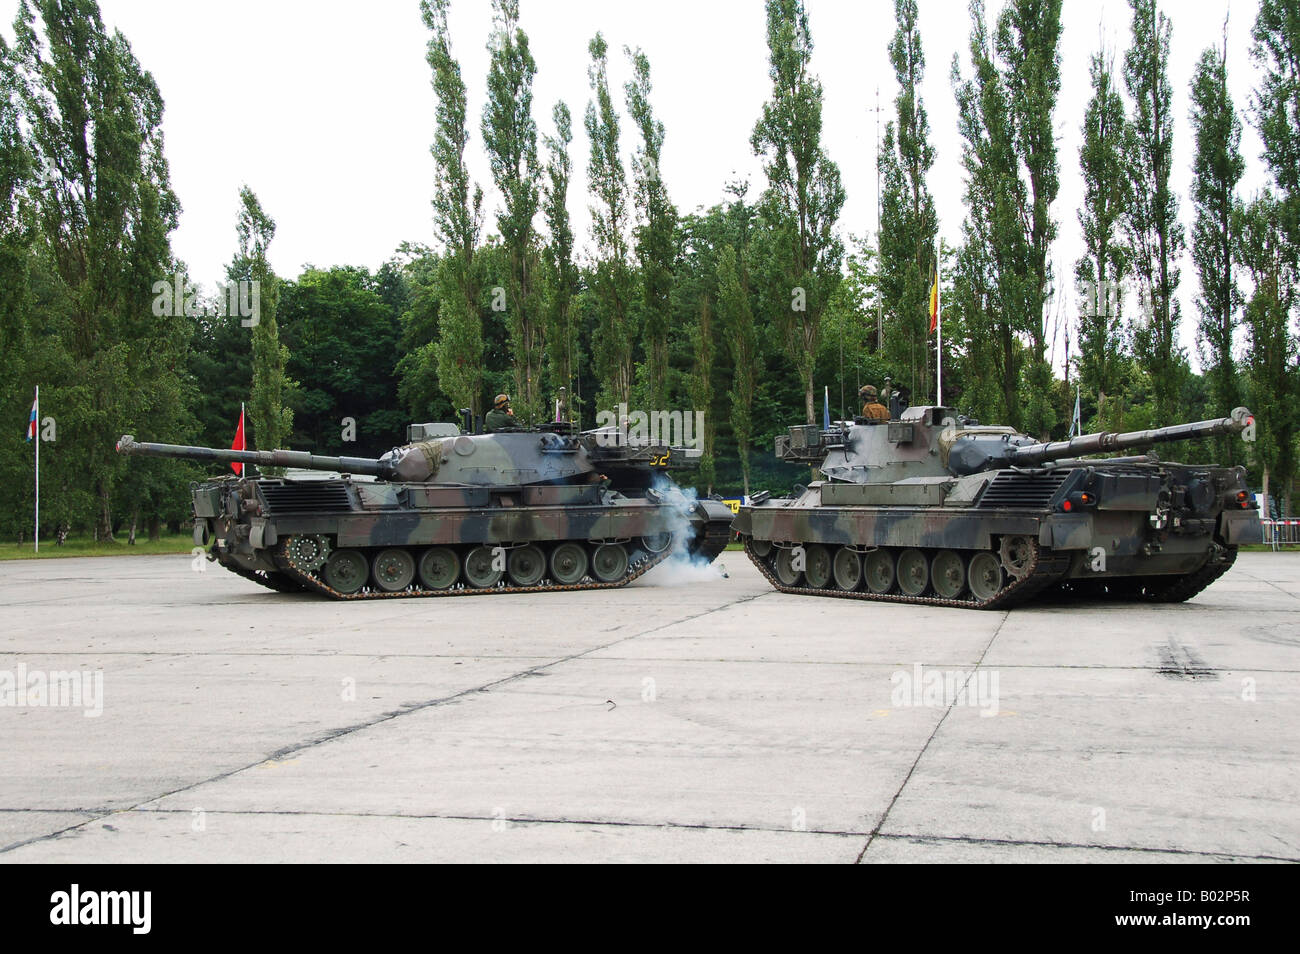 The Leopard 1A5 of the Belgian Army in action. - Stock Image